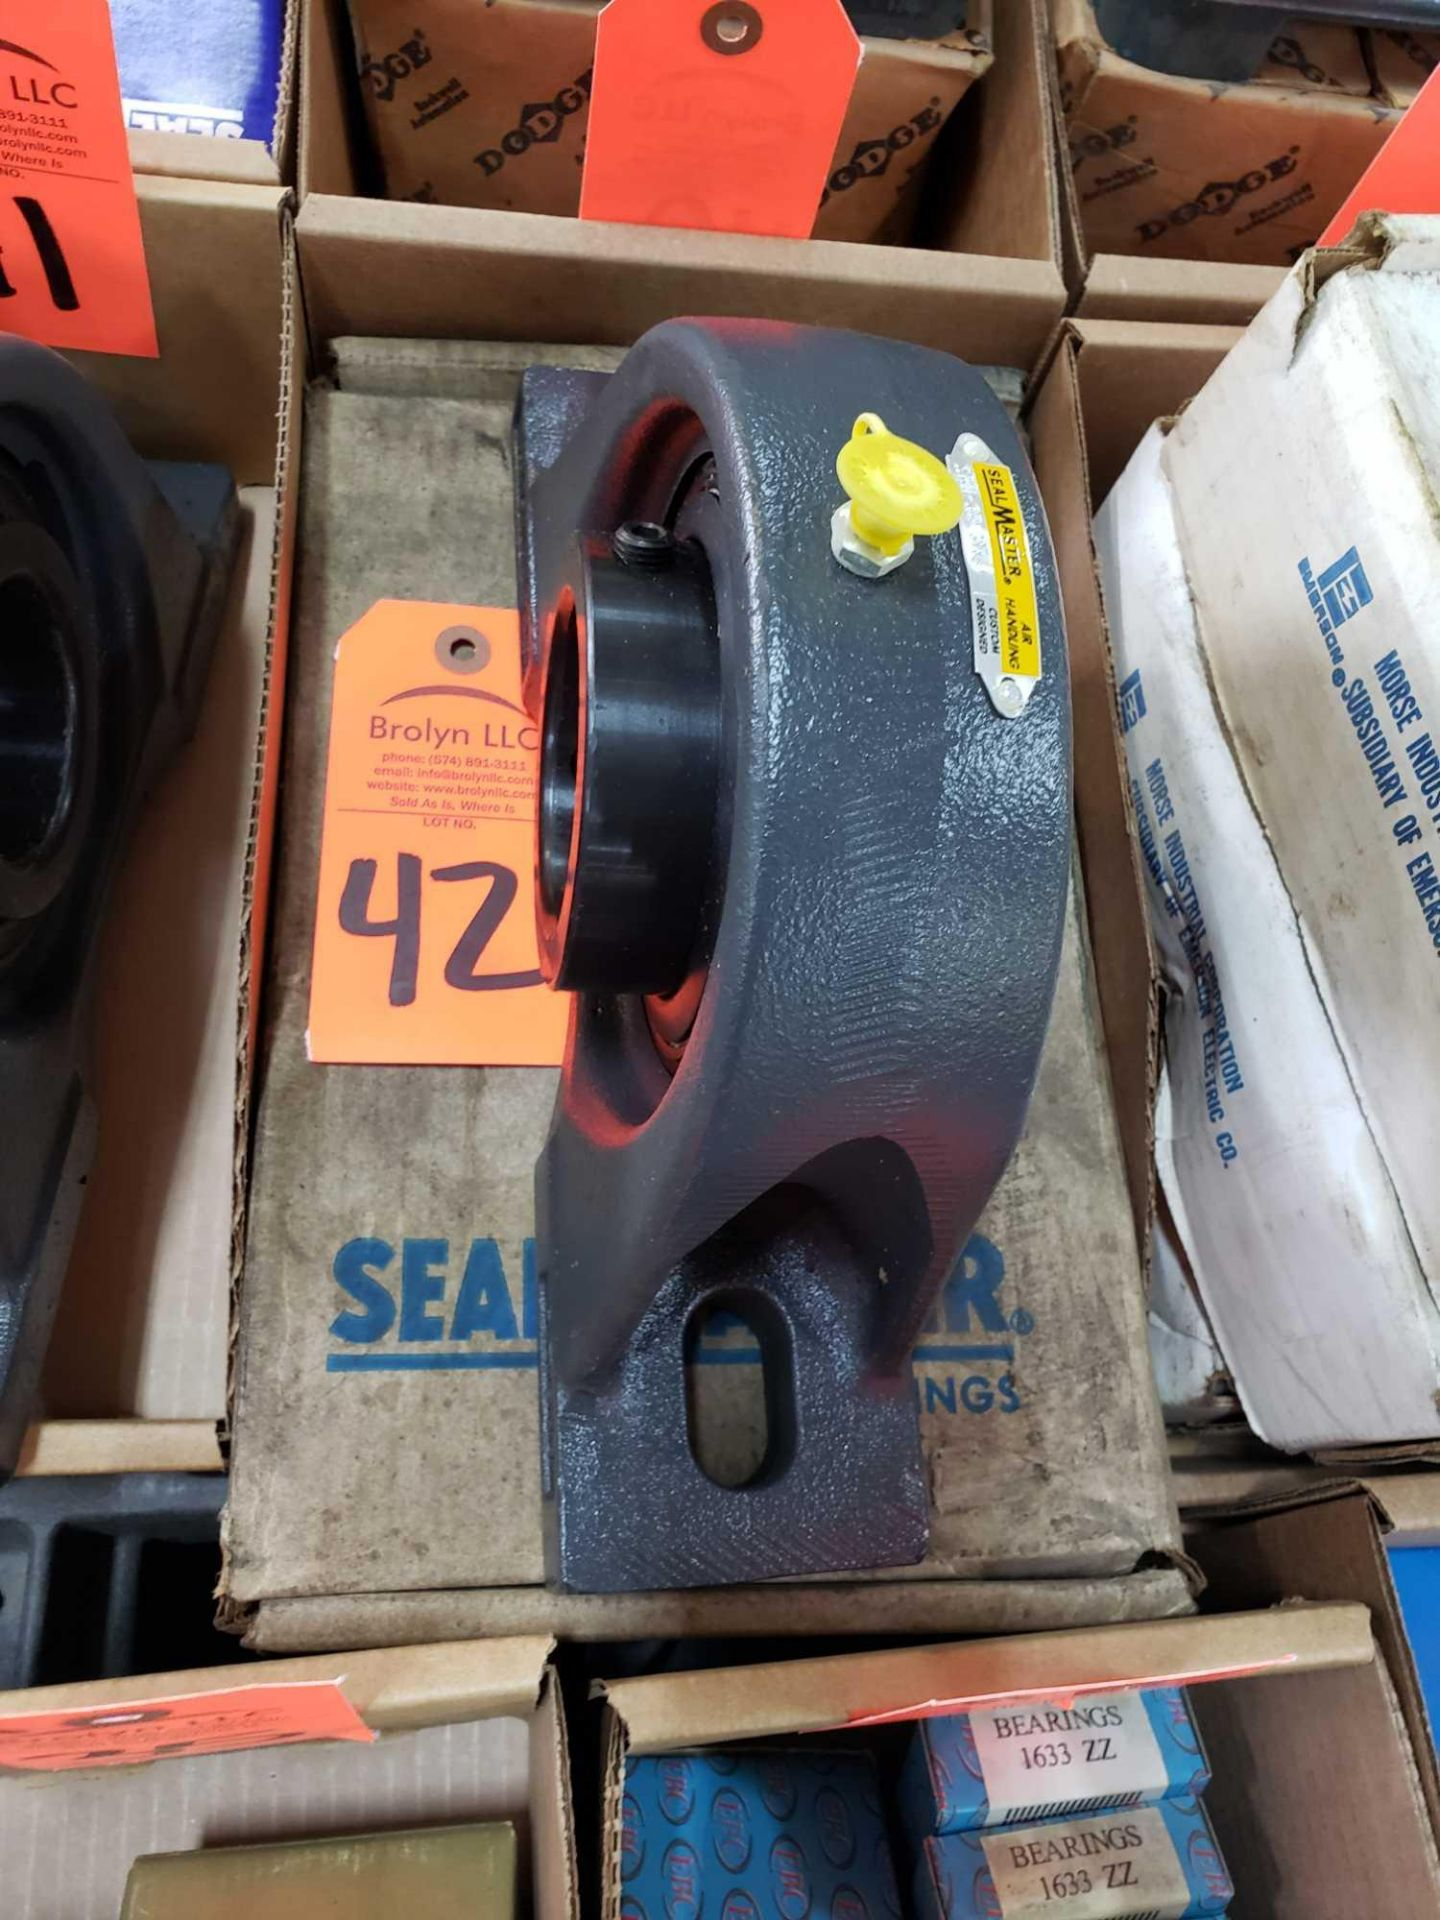 Lot 42 - Sealmaster Bearing model SPM-39CXM. New with box.